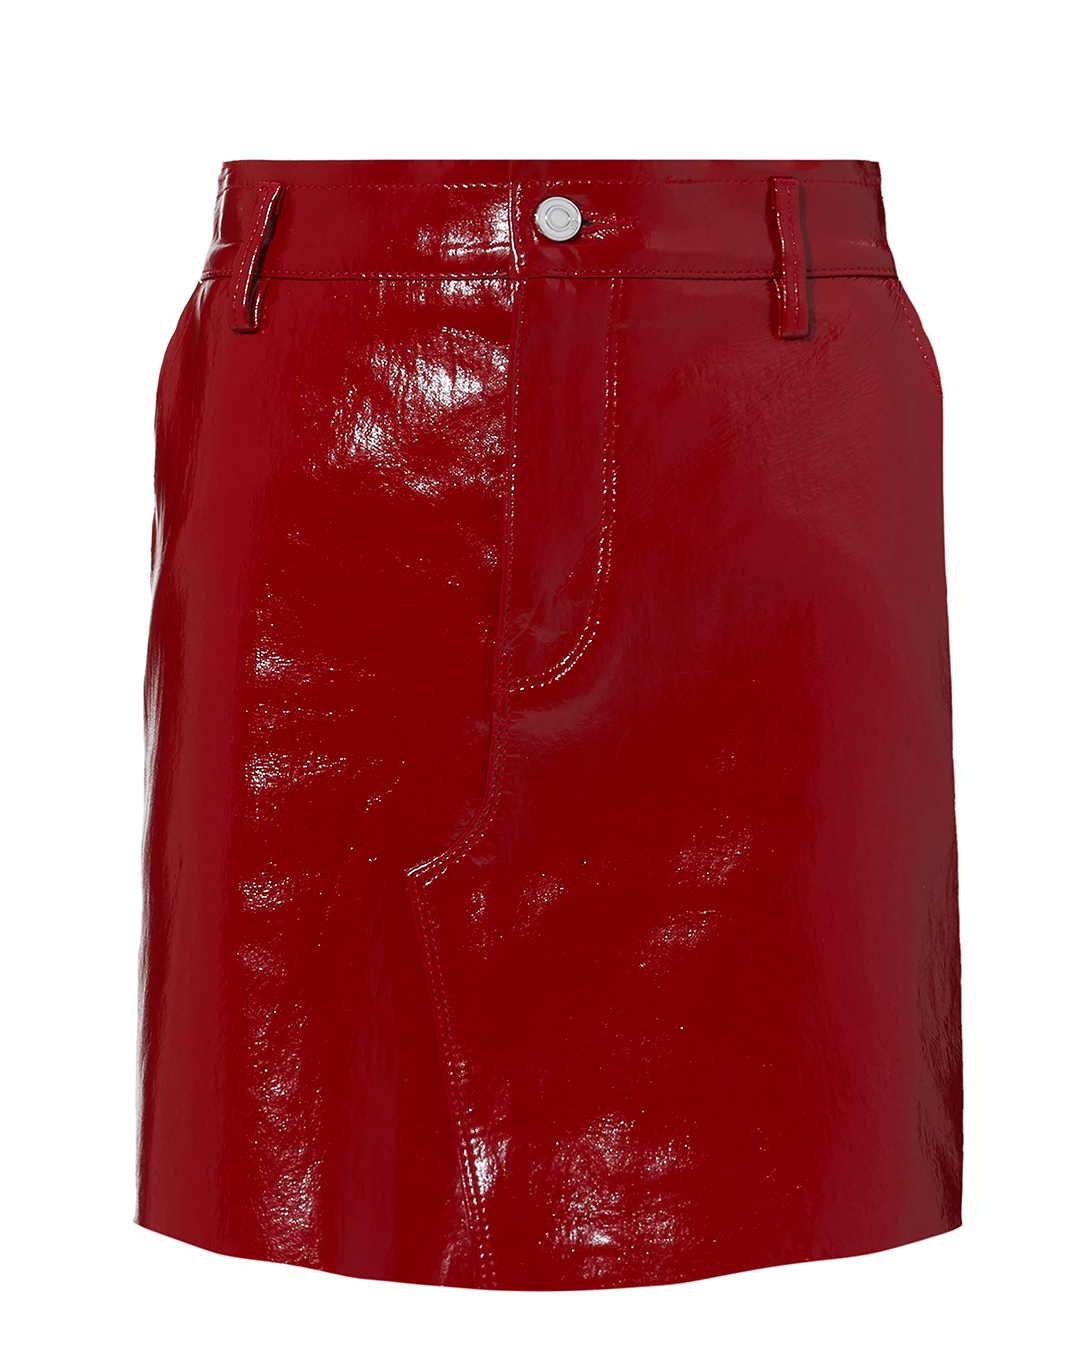 Red Patent Leather Mini Skirt Red, Cardinal